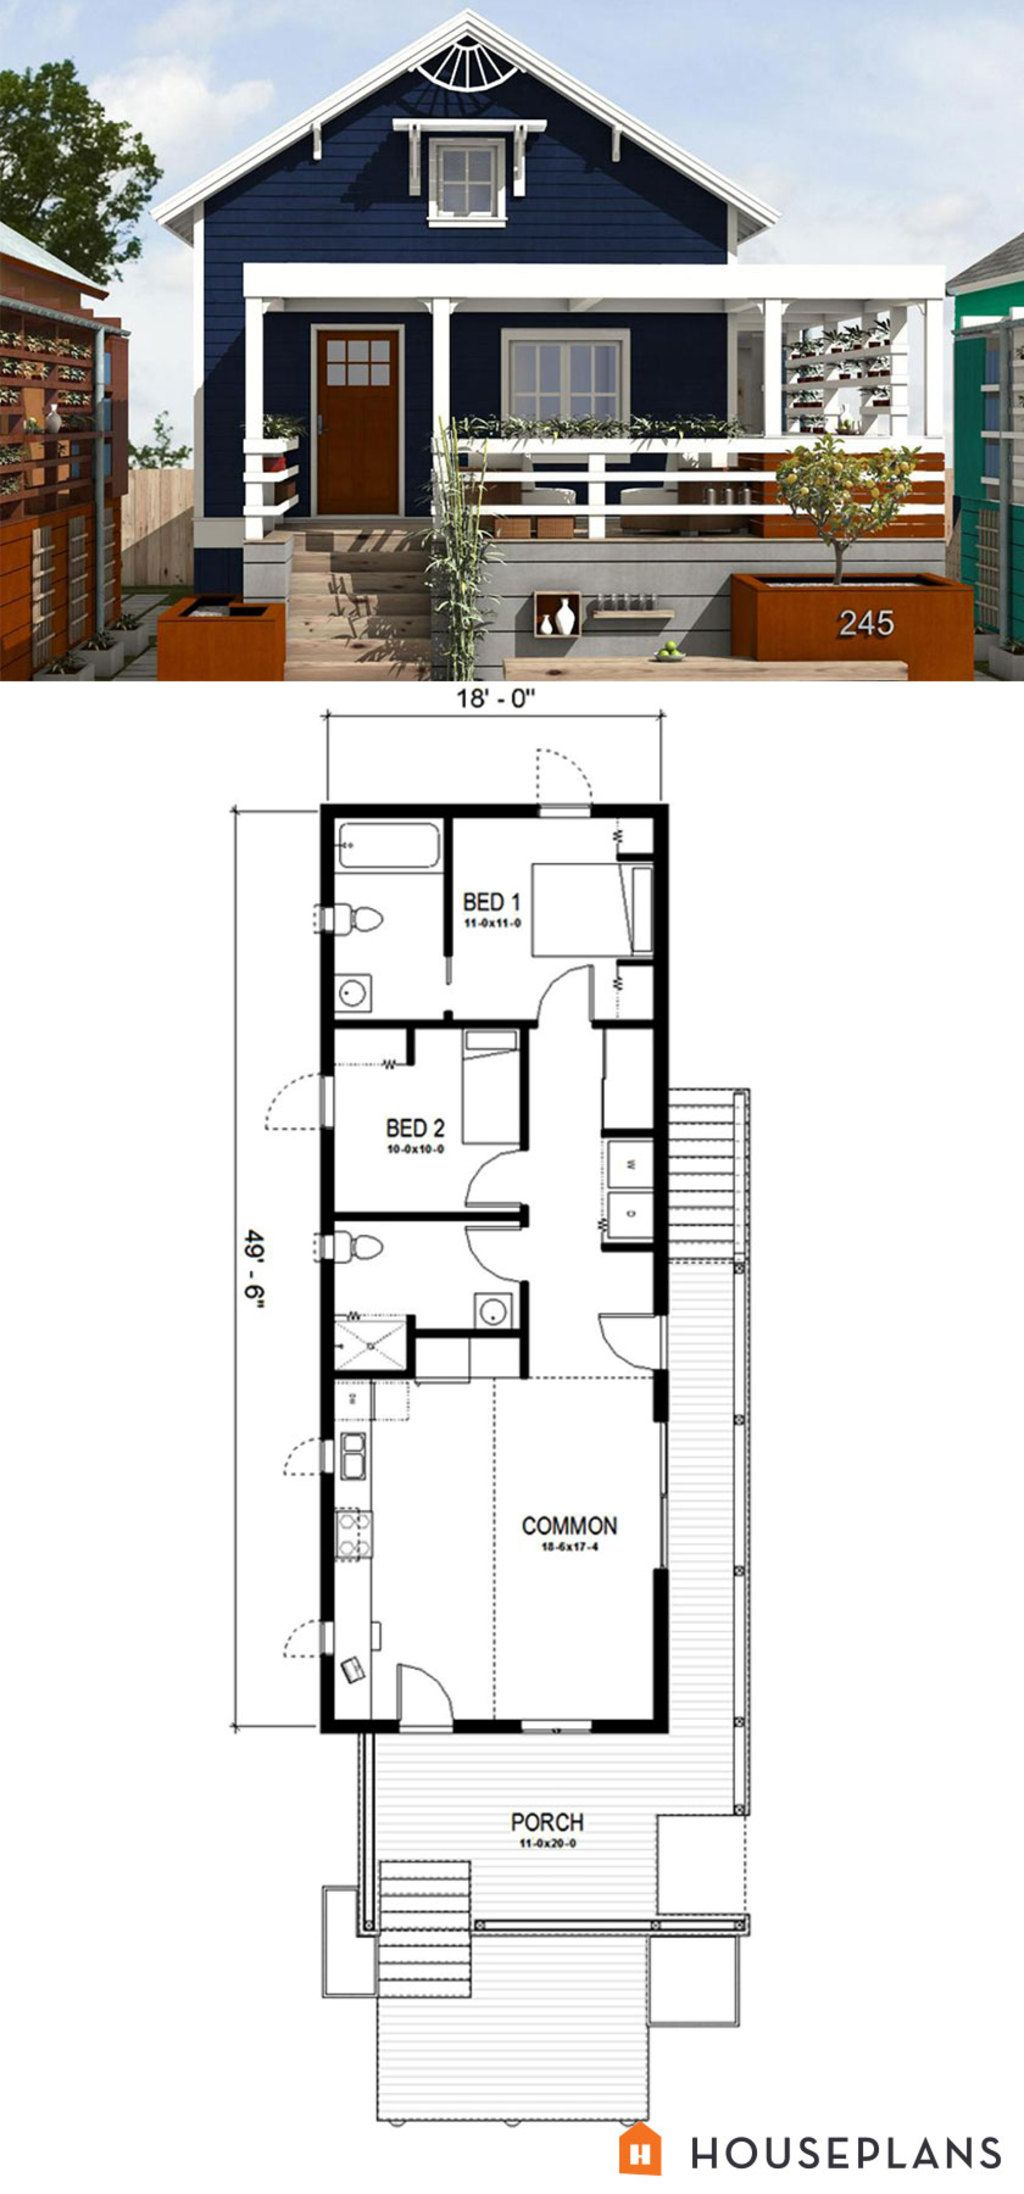 Vernacular architecture of southern small house plans elevated new also best cobacoba images in rh pinterest